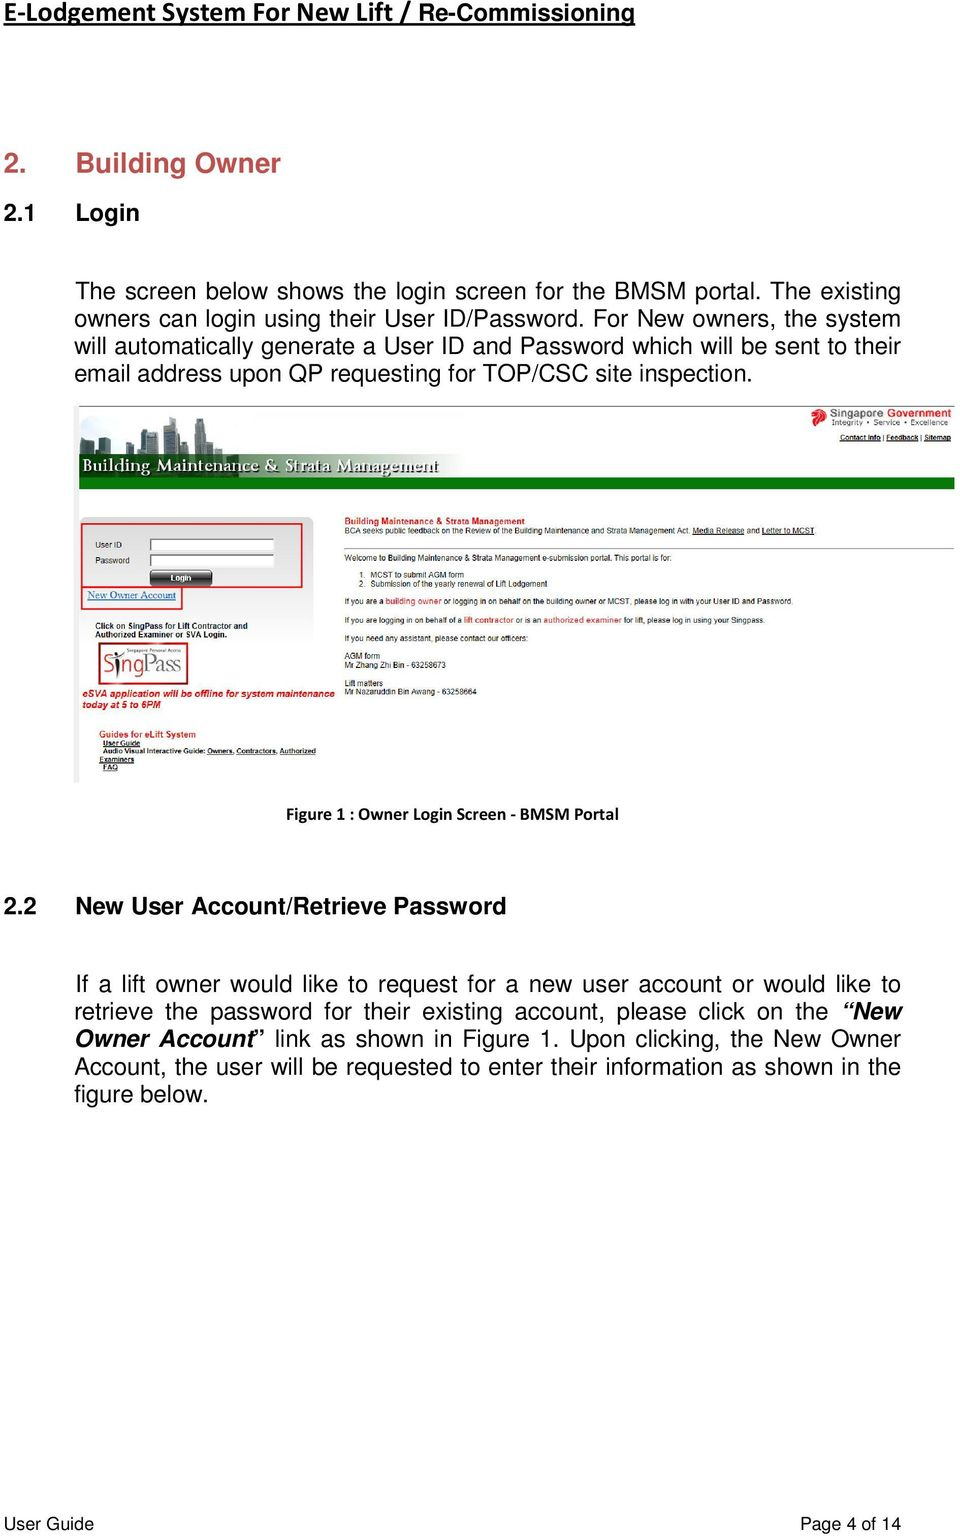 E-Lodgement System User Guide  (For New / Re-commissioning Lift) - PDF